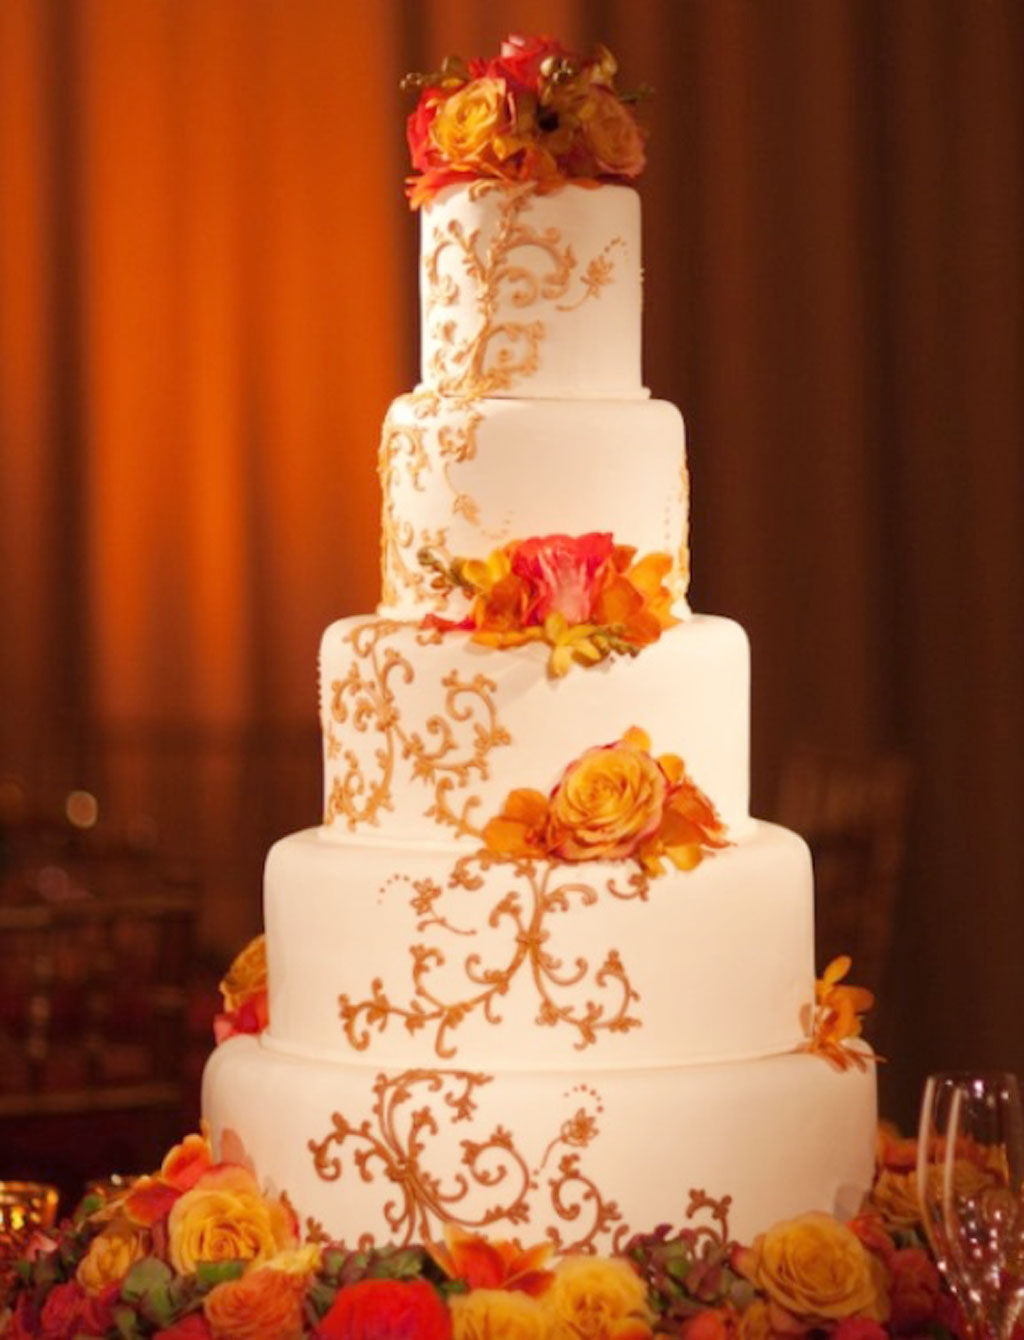 Fall Theme Orange Wedding Cake Wedding Cake Cake Ideas